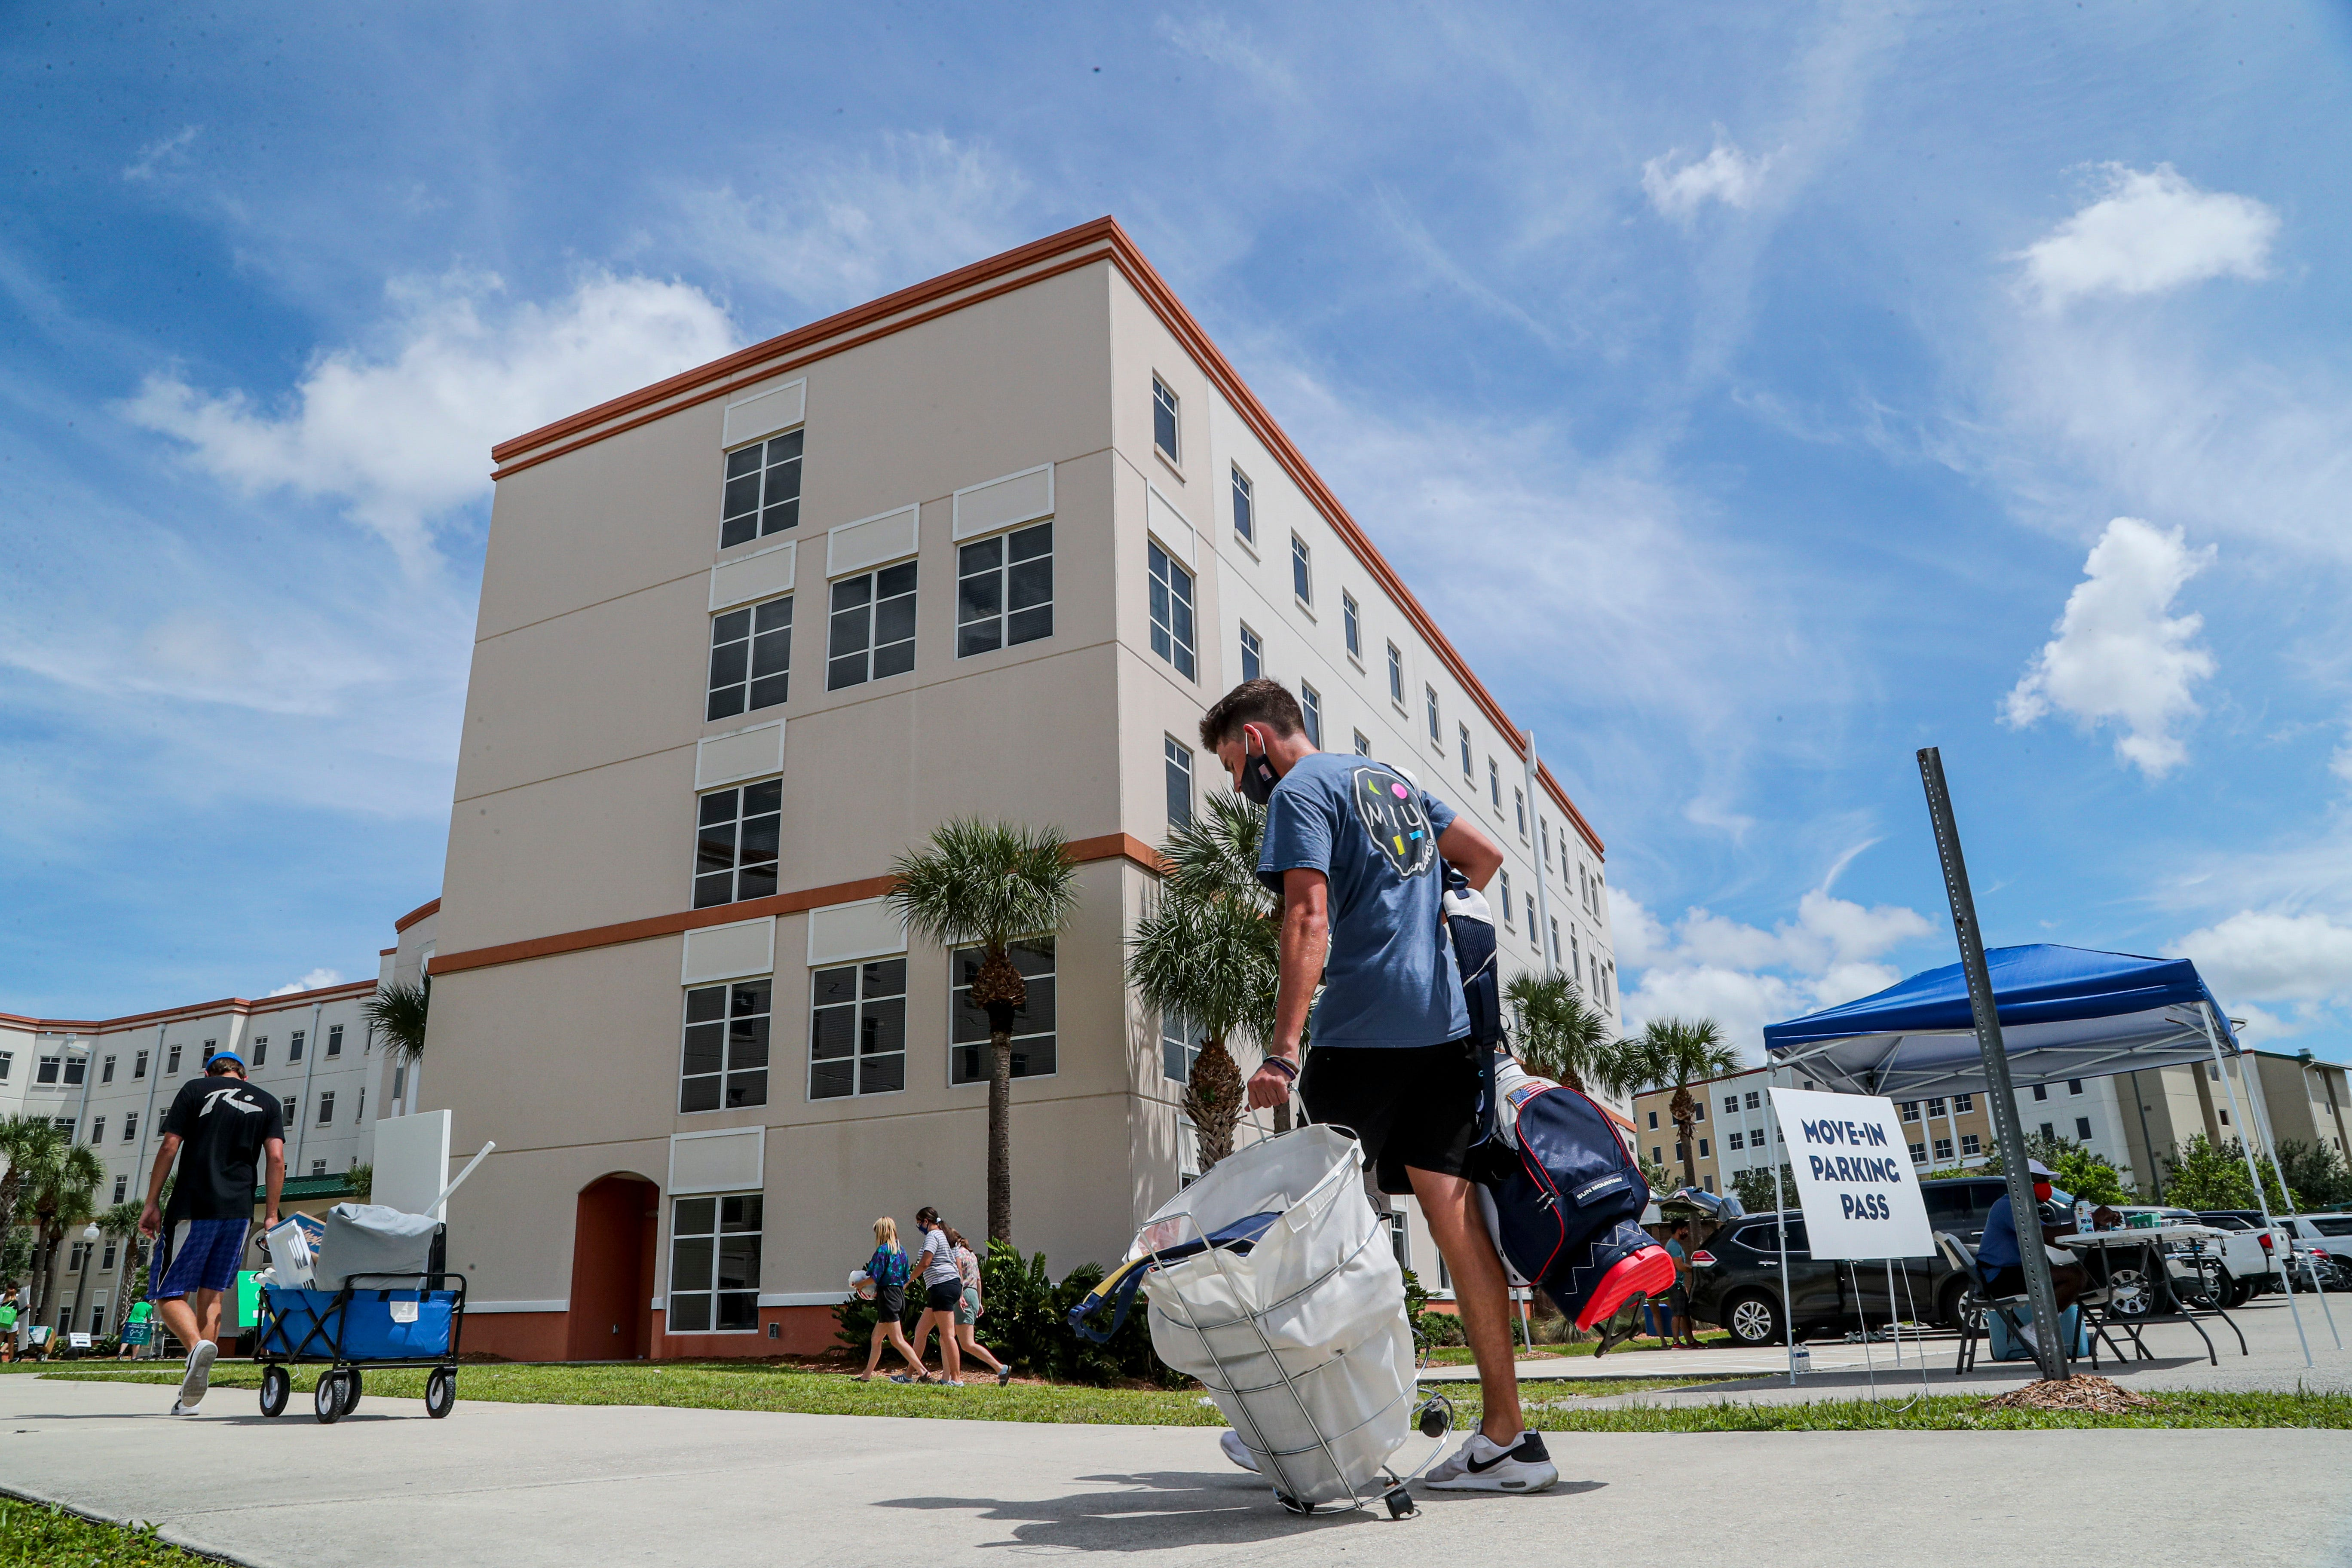 Fall semester at FGCU has begun with highlights on students moving in to campus dorms, the changes being seen on campus safety wise and the budget realities for what's to come.